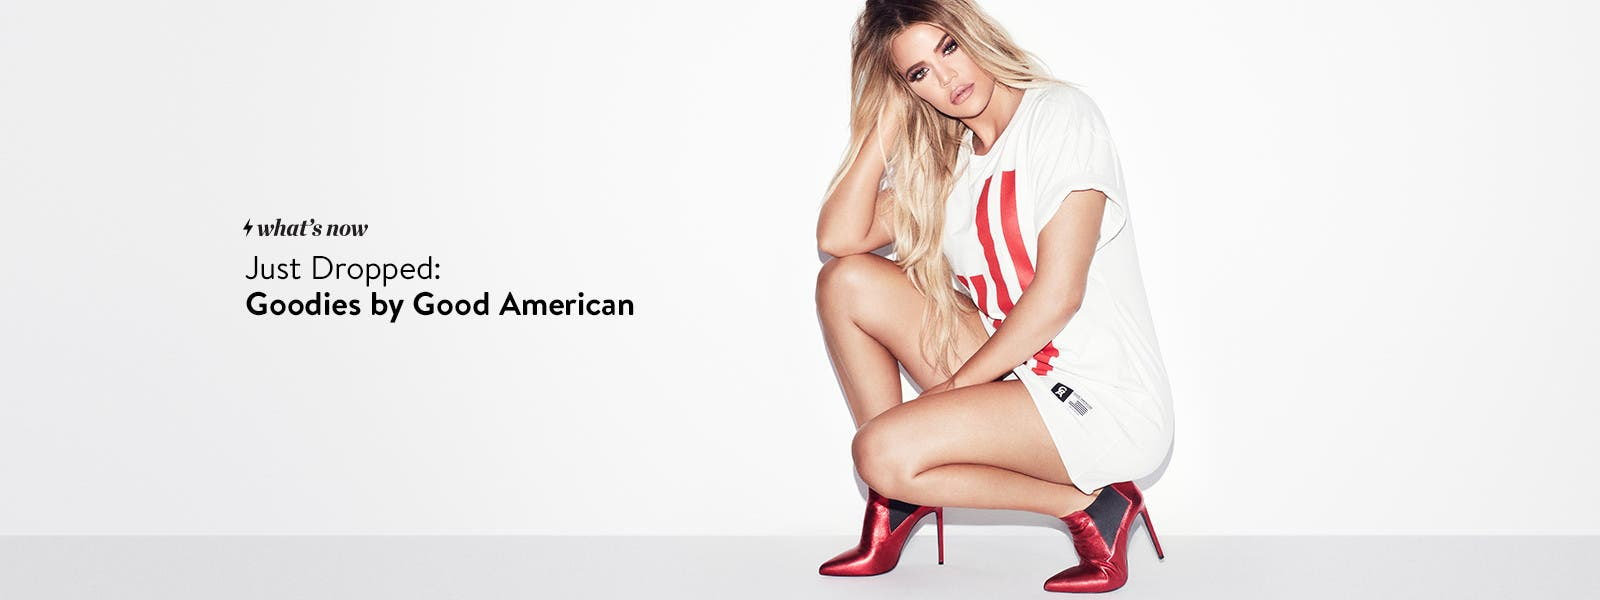 Just dropped: Goodies by Good American.